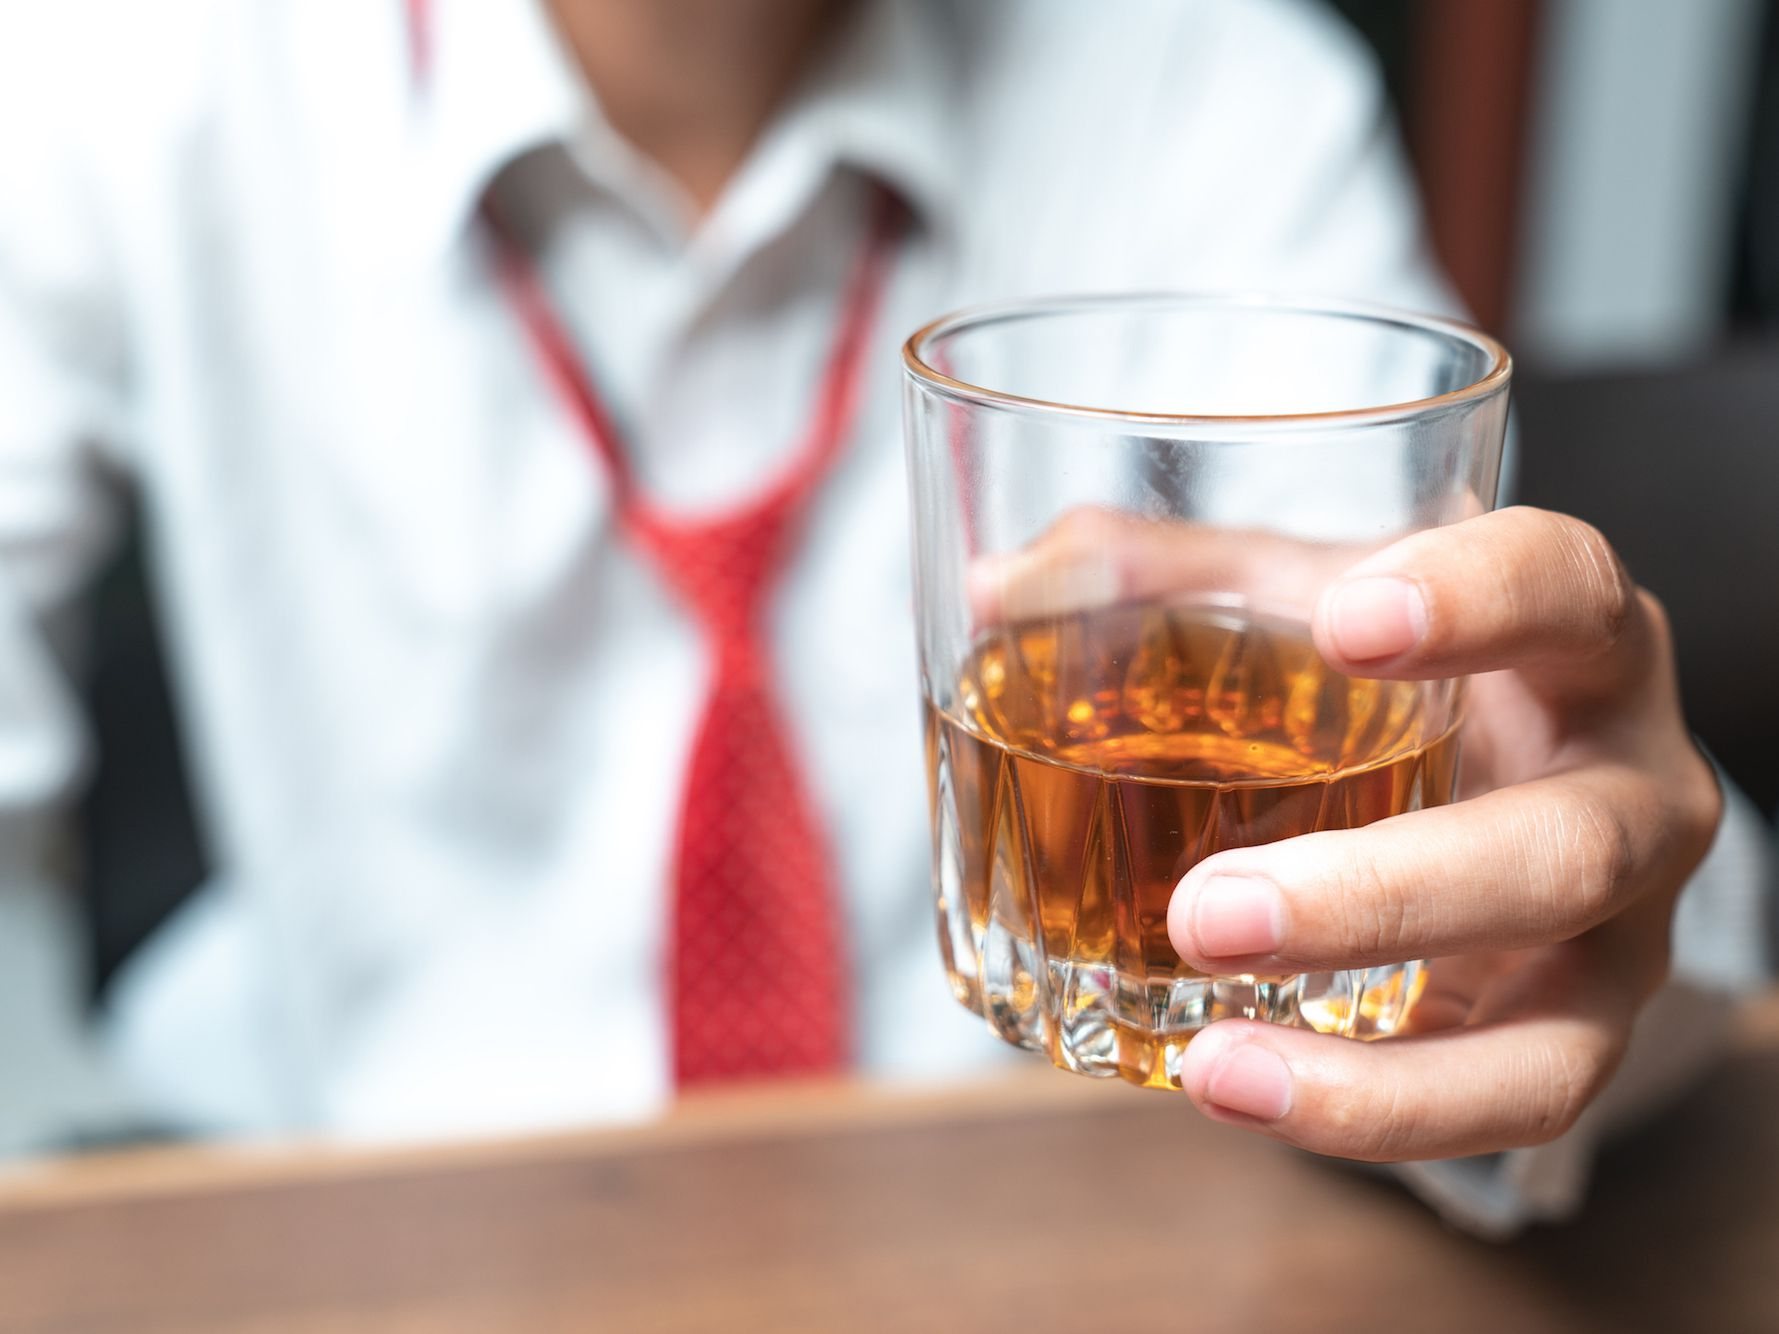 The Link Between Stress and Alcohol